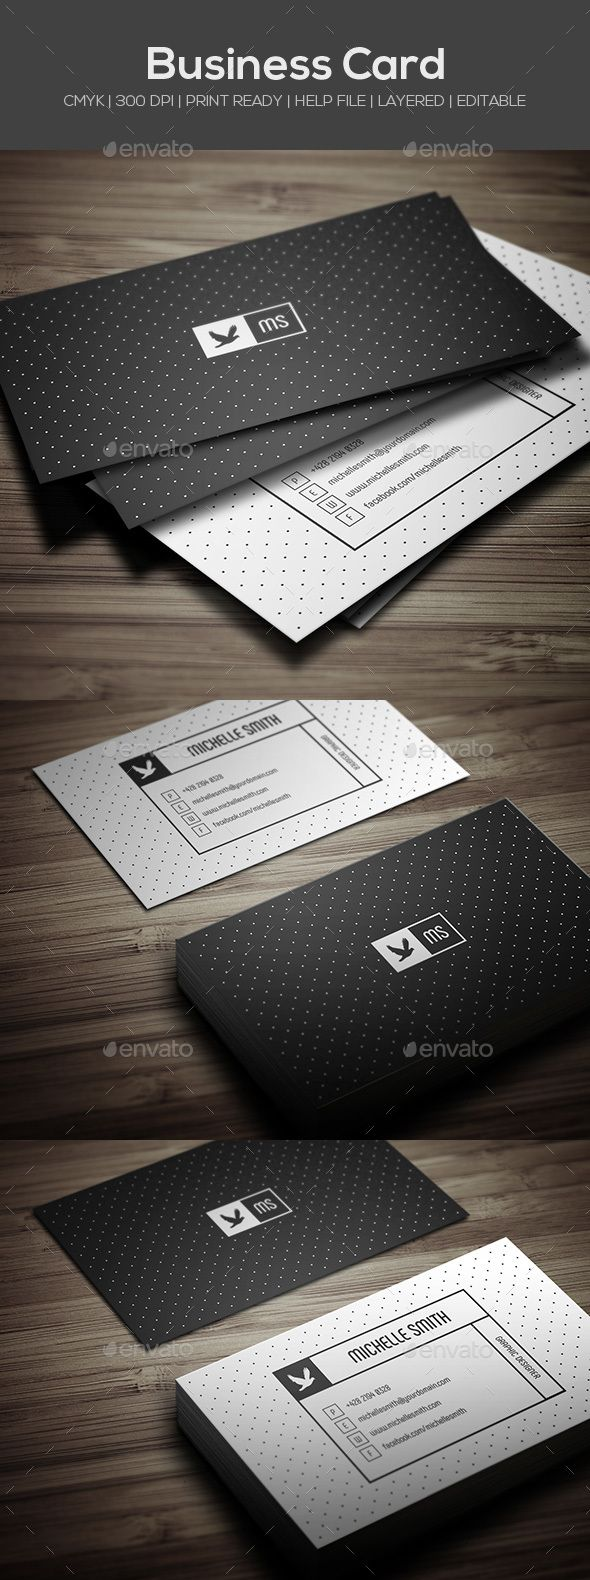 The 25 best business card displays ideas on pinterest business the 25 best business card displays ideas on pinterest business card holders etsy business cards and cheap business cards magicingreecefo Choice Image